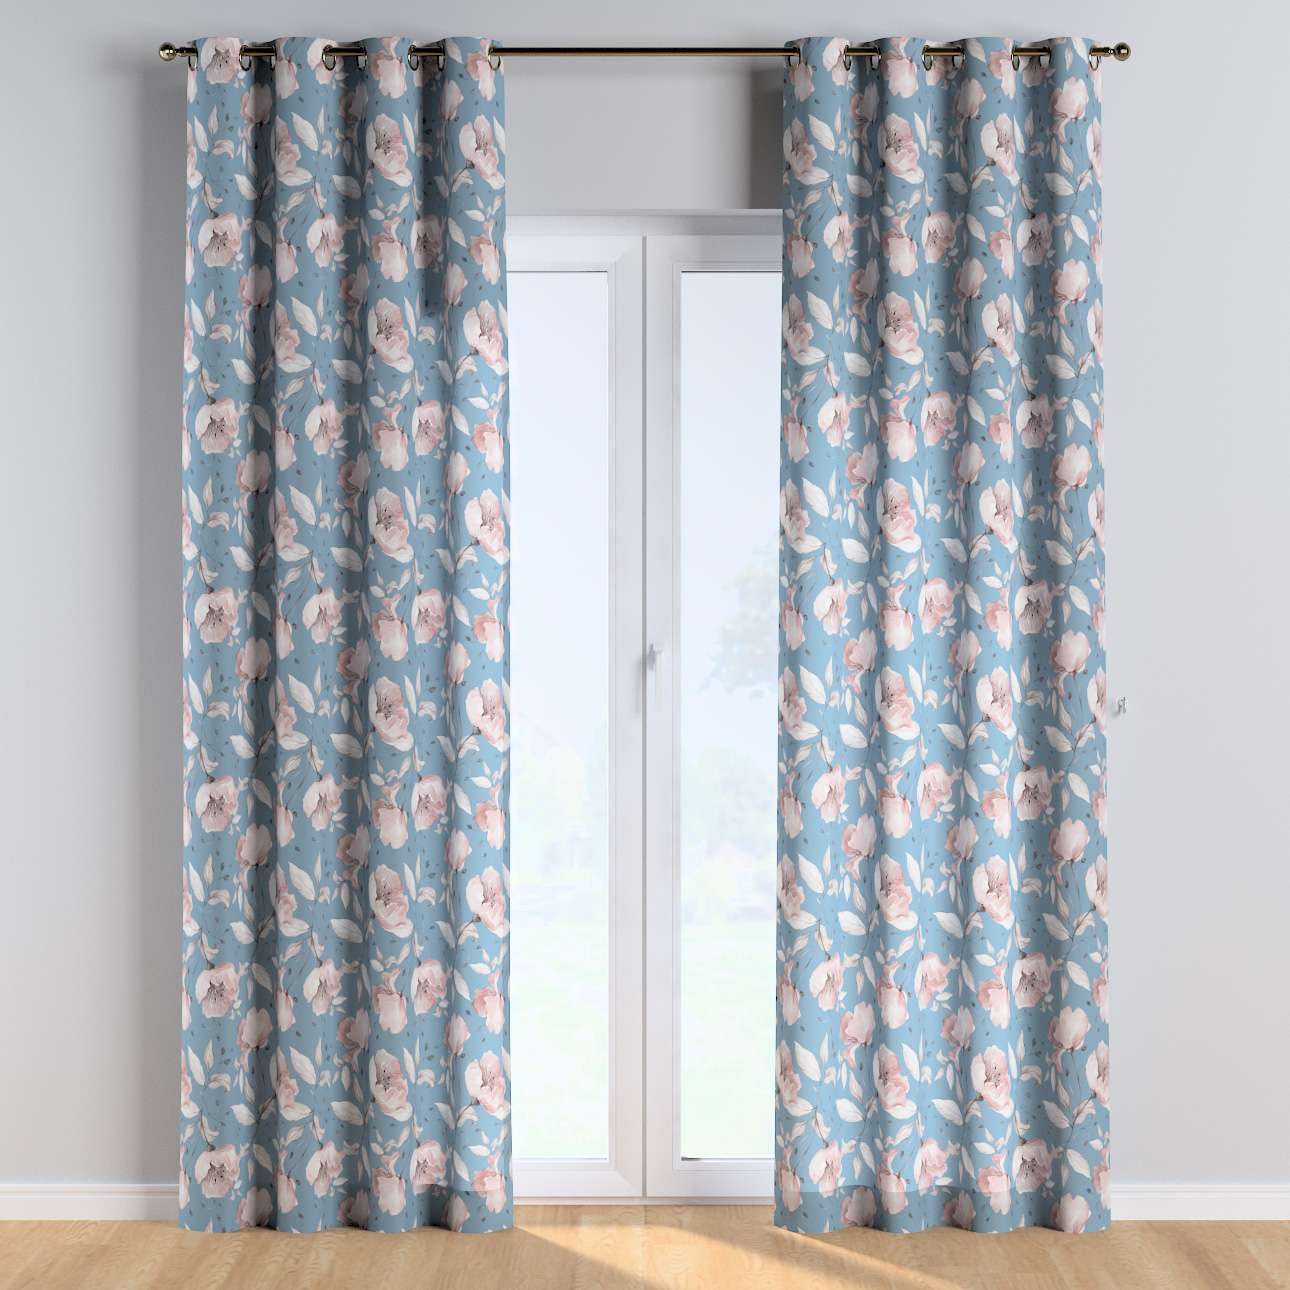 Eyelet curtains in collection Magic Collection, fabric: 500-18